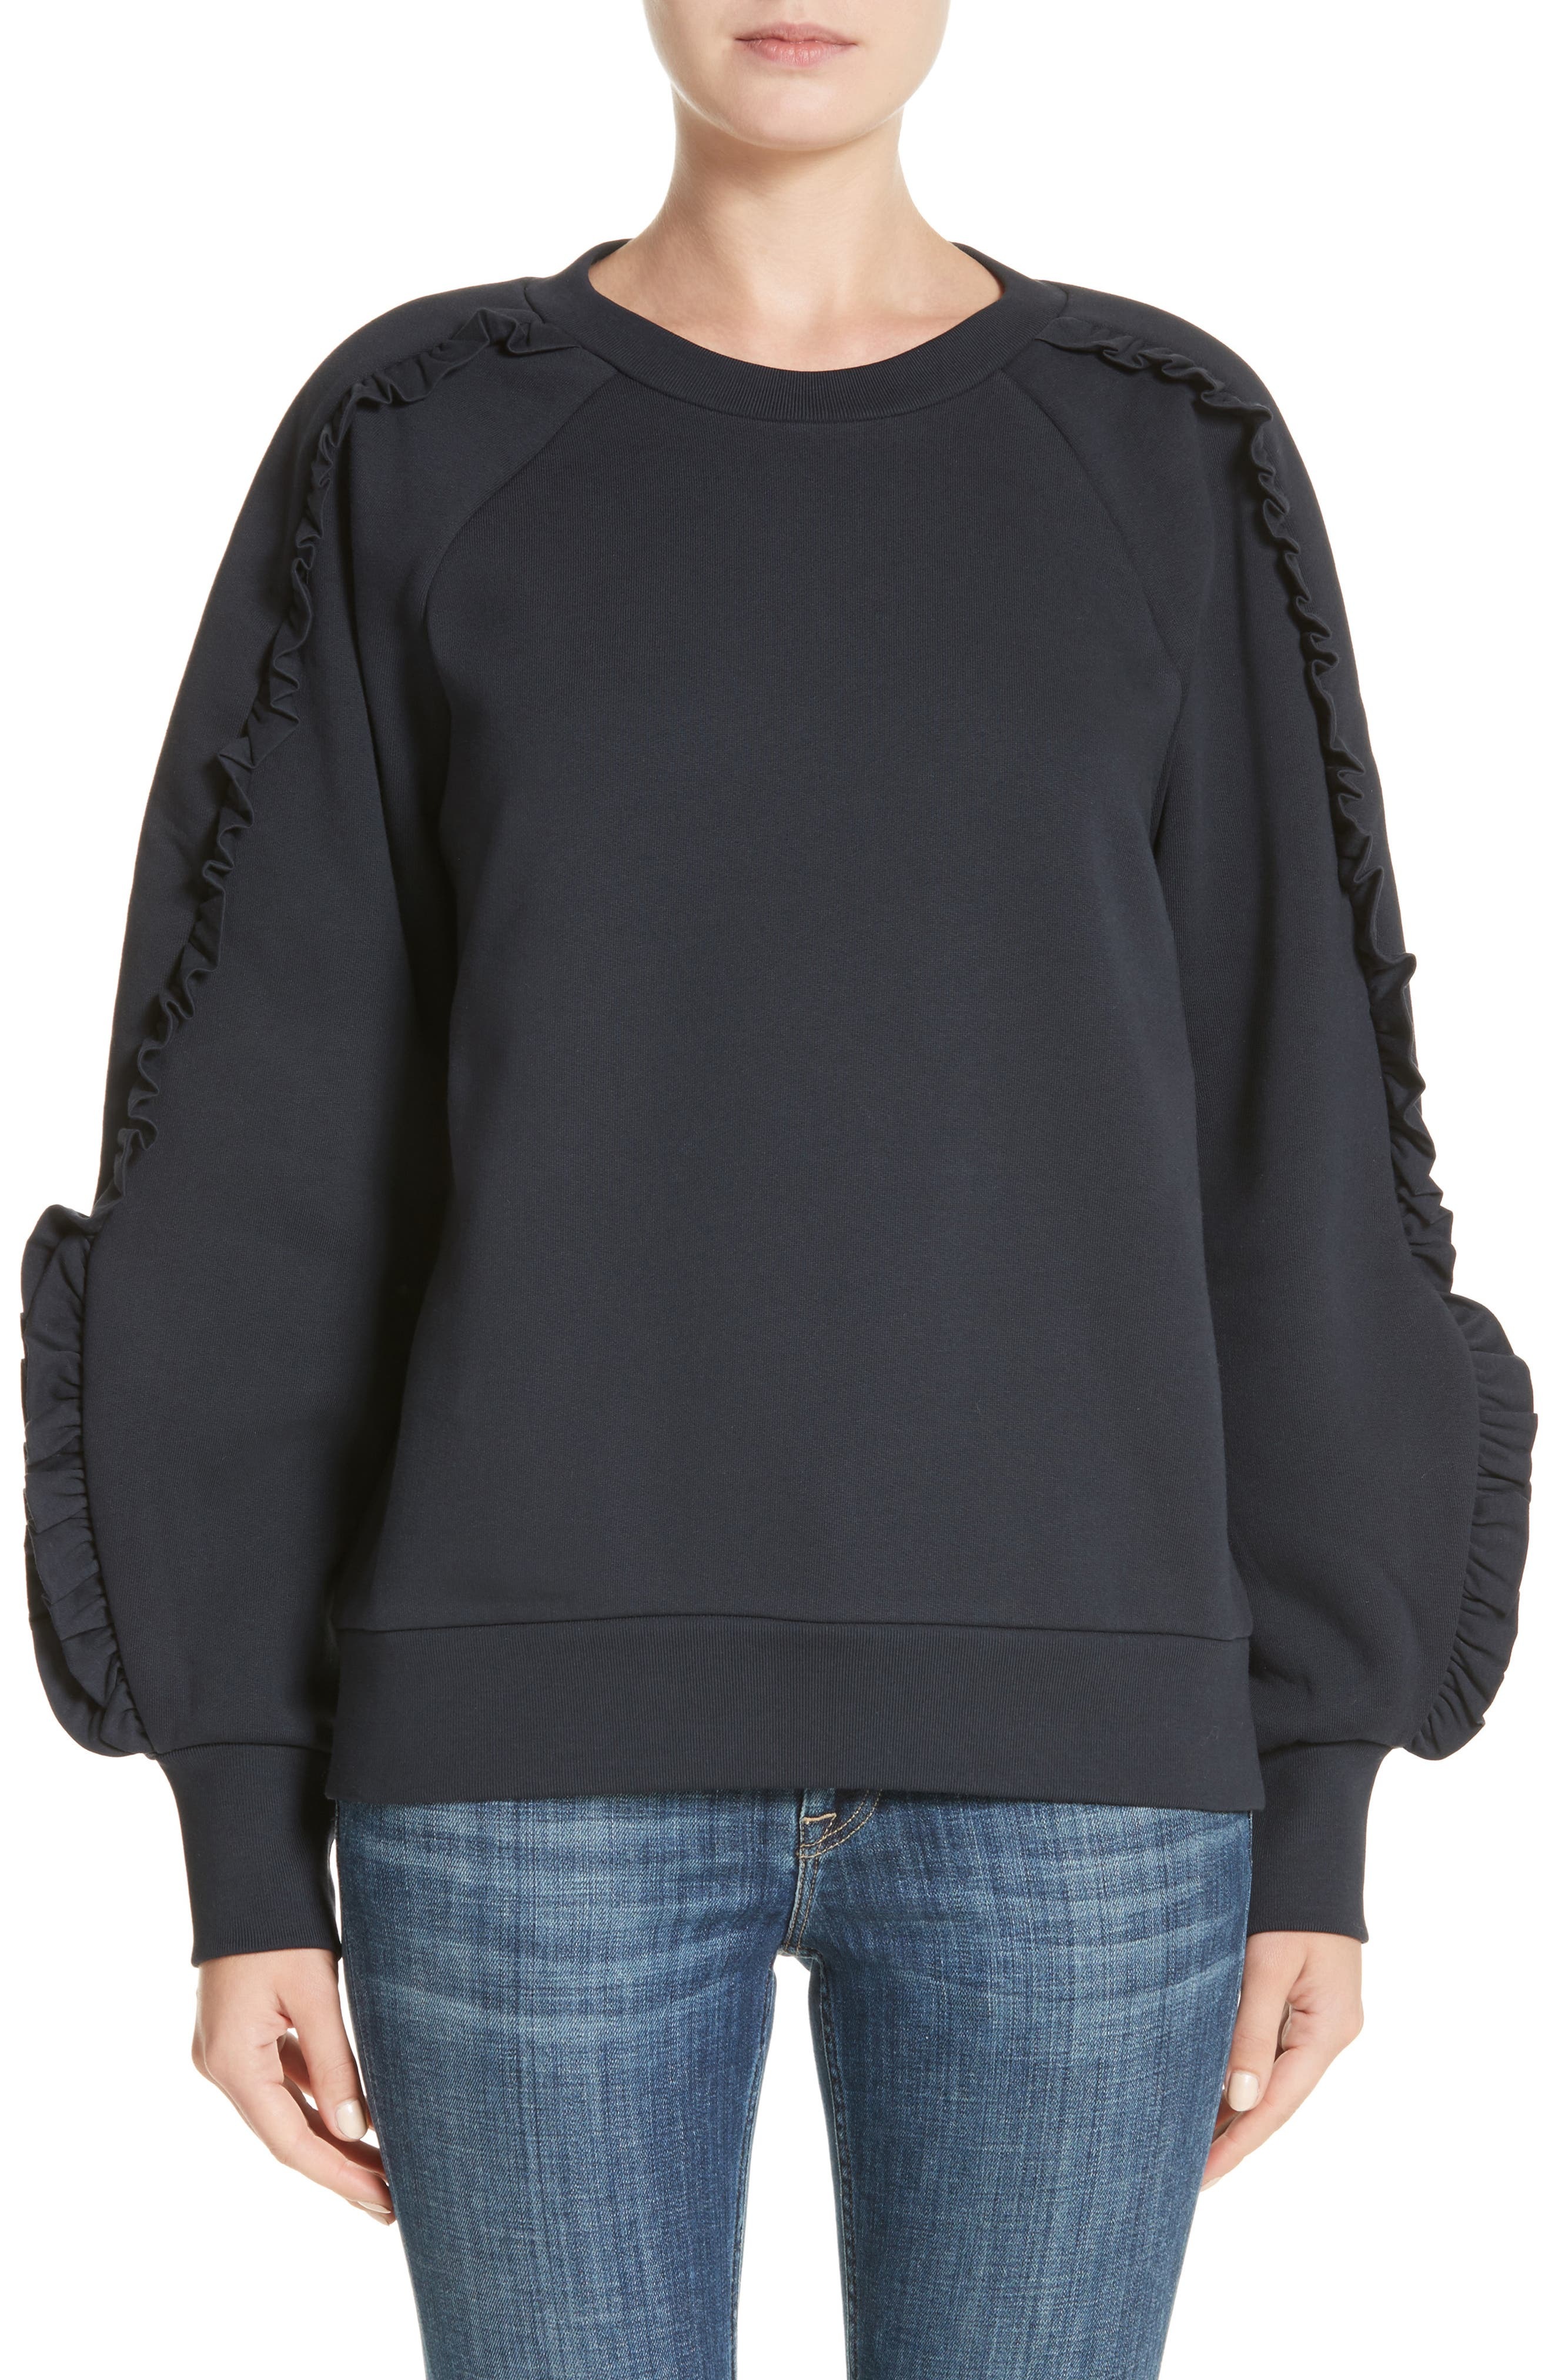 Kupa Ruffle Sleeve Sweatshirt,                             Main thumbnail 2, color,